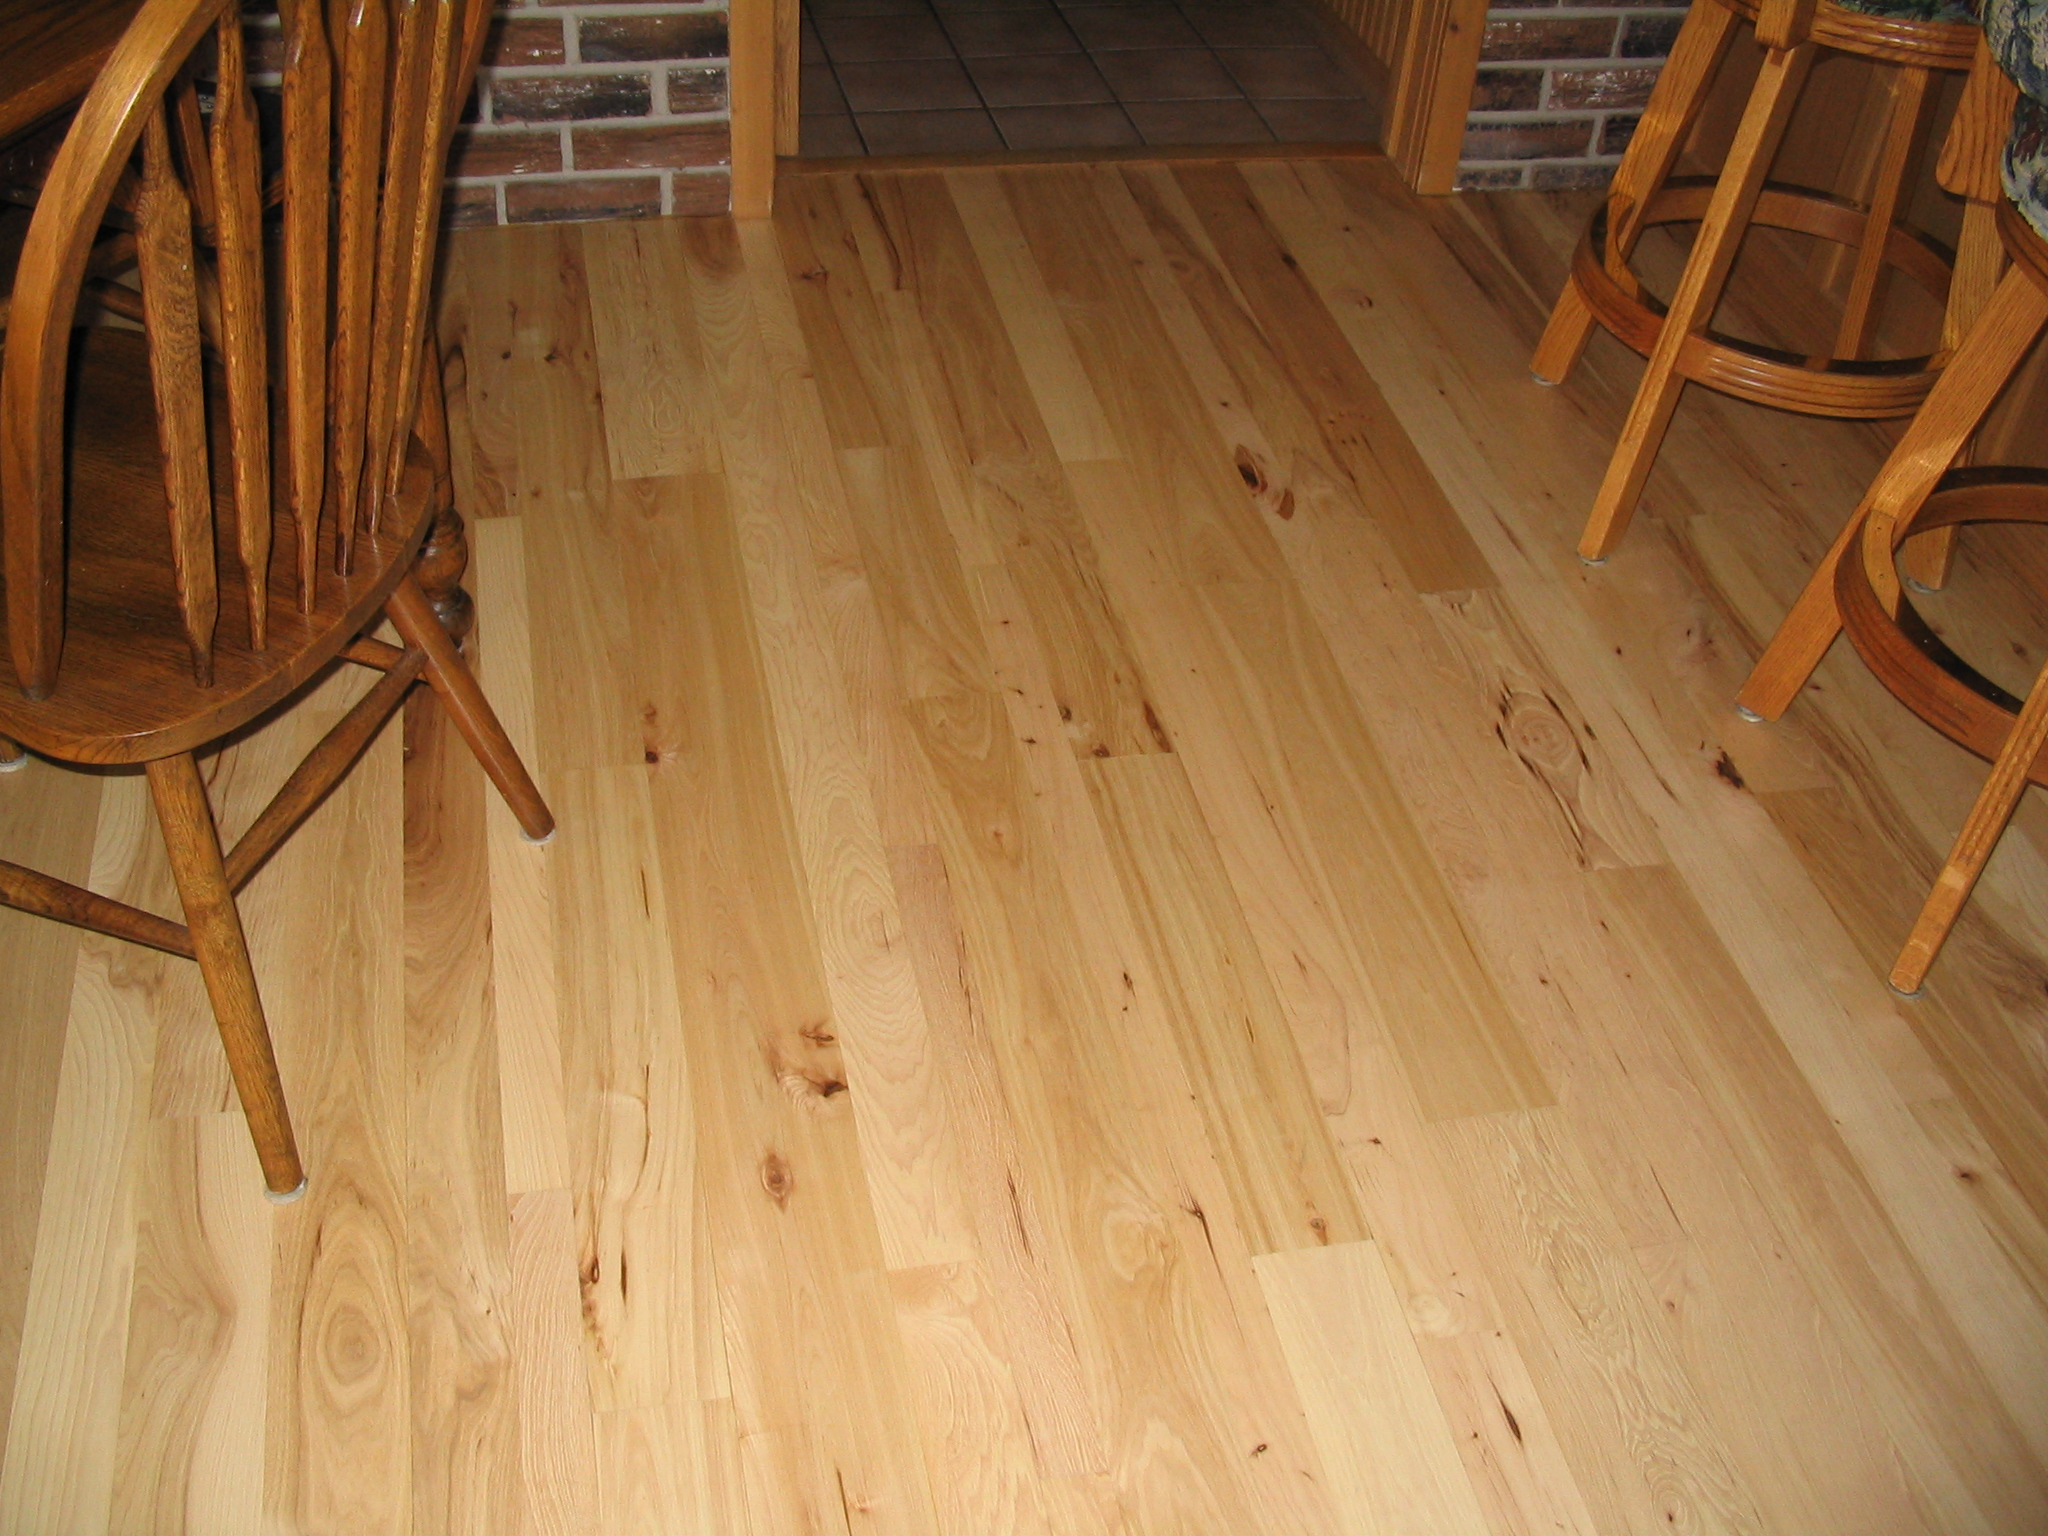 19 hardwood floor hickory oak reclaimed flooring arc wood for 100 floors 19 floor